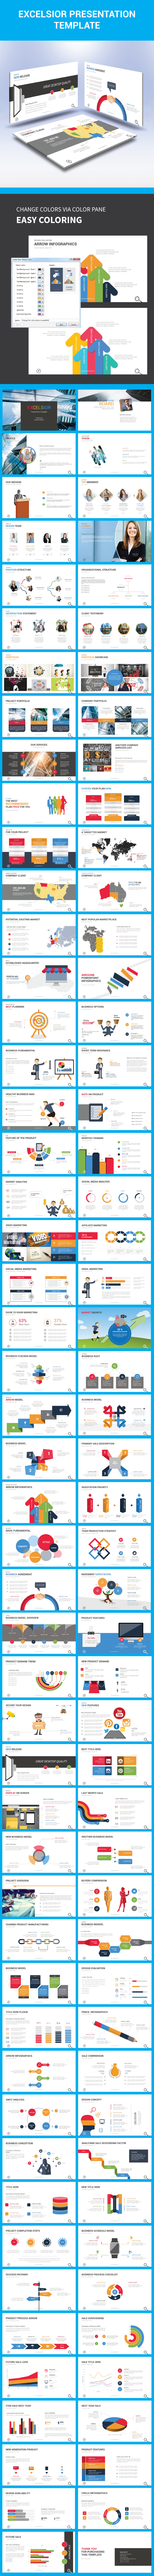 Excelsior Presentation Template - Business PowerPoint Templates